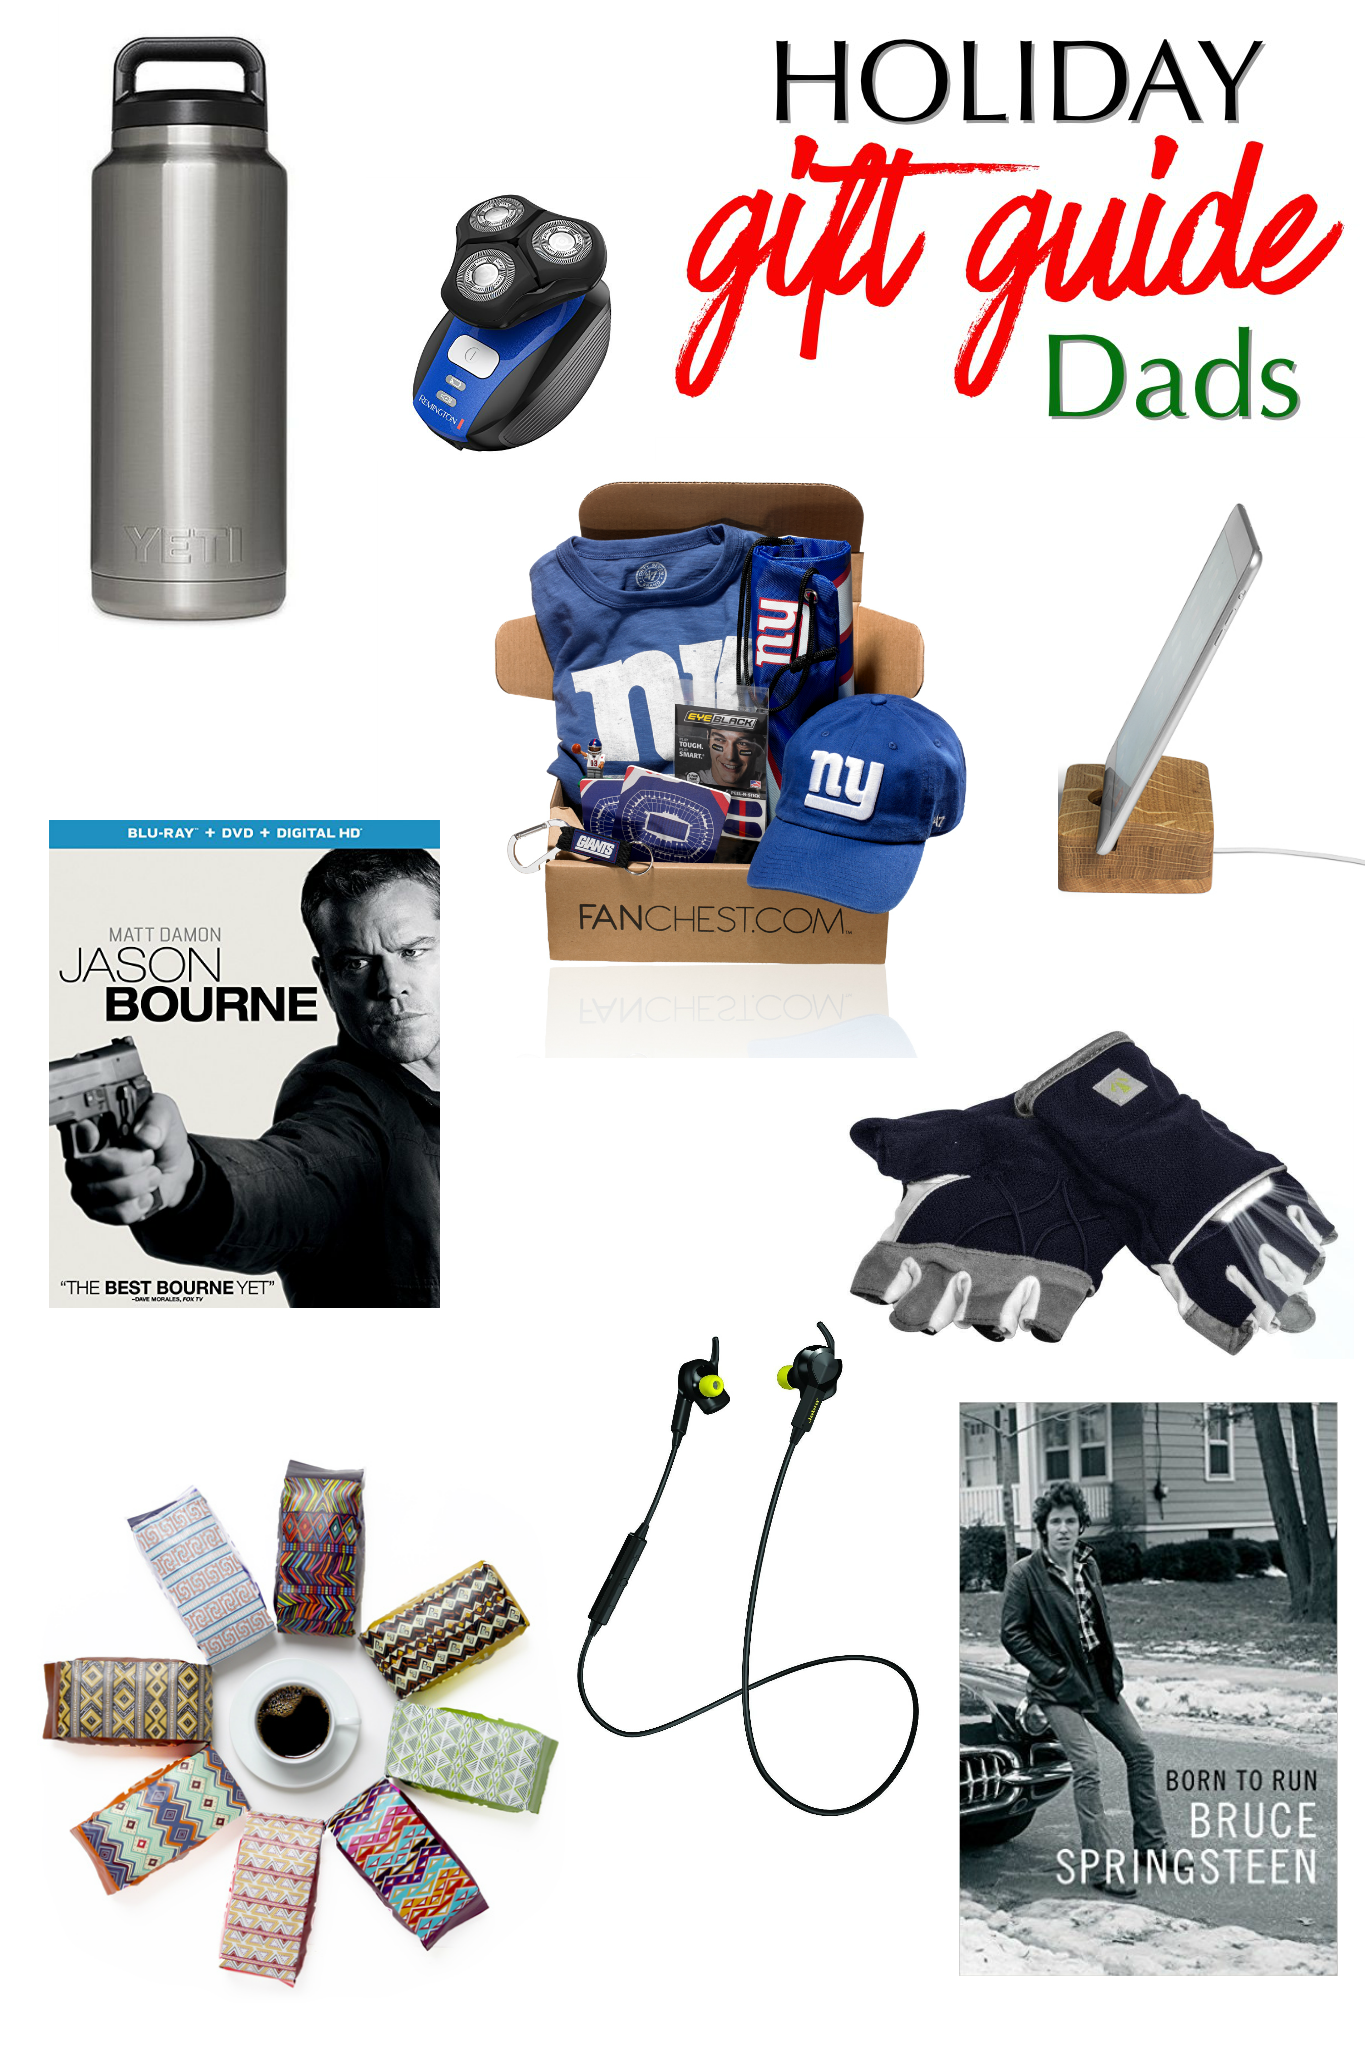 Holiday Gift Guide for Dads - What Dad Really Wants this Christmas